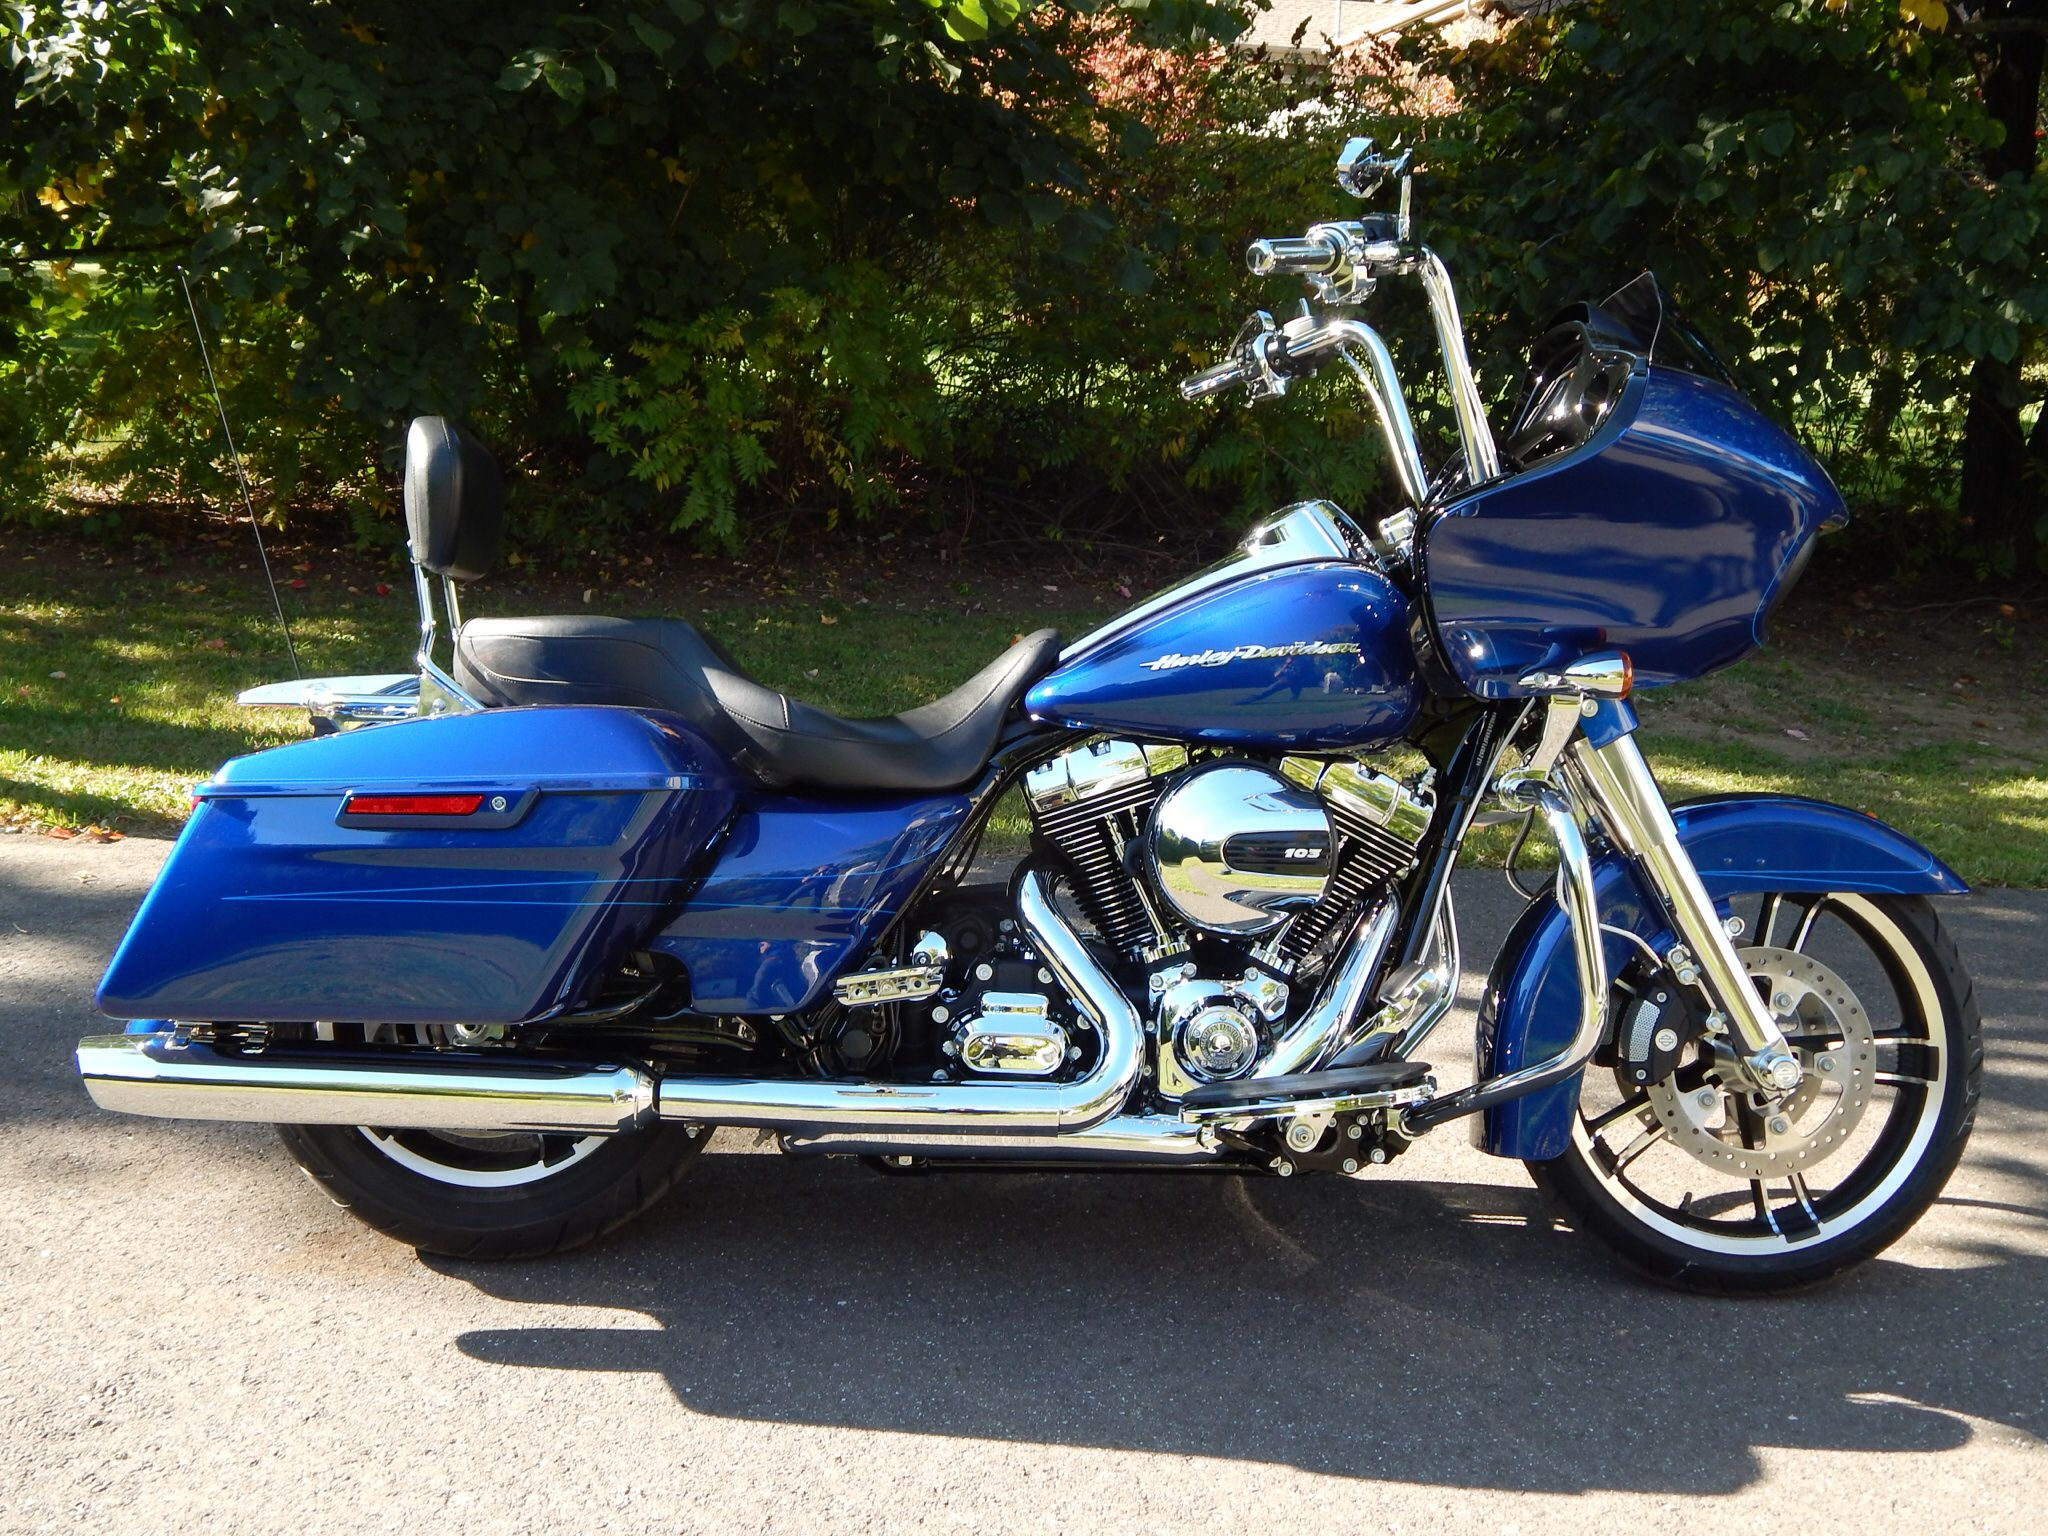 My new 2015 road glide special with 14 apes tallboy seat and chrome fork